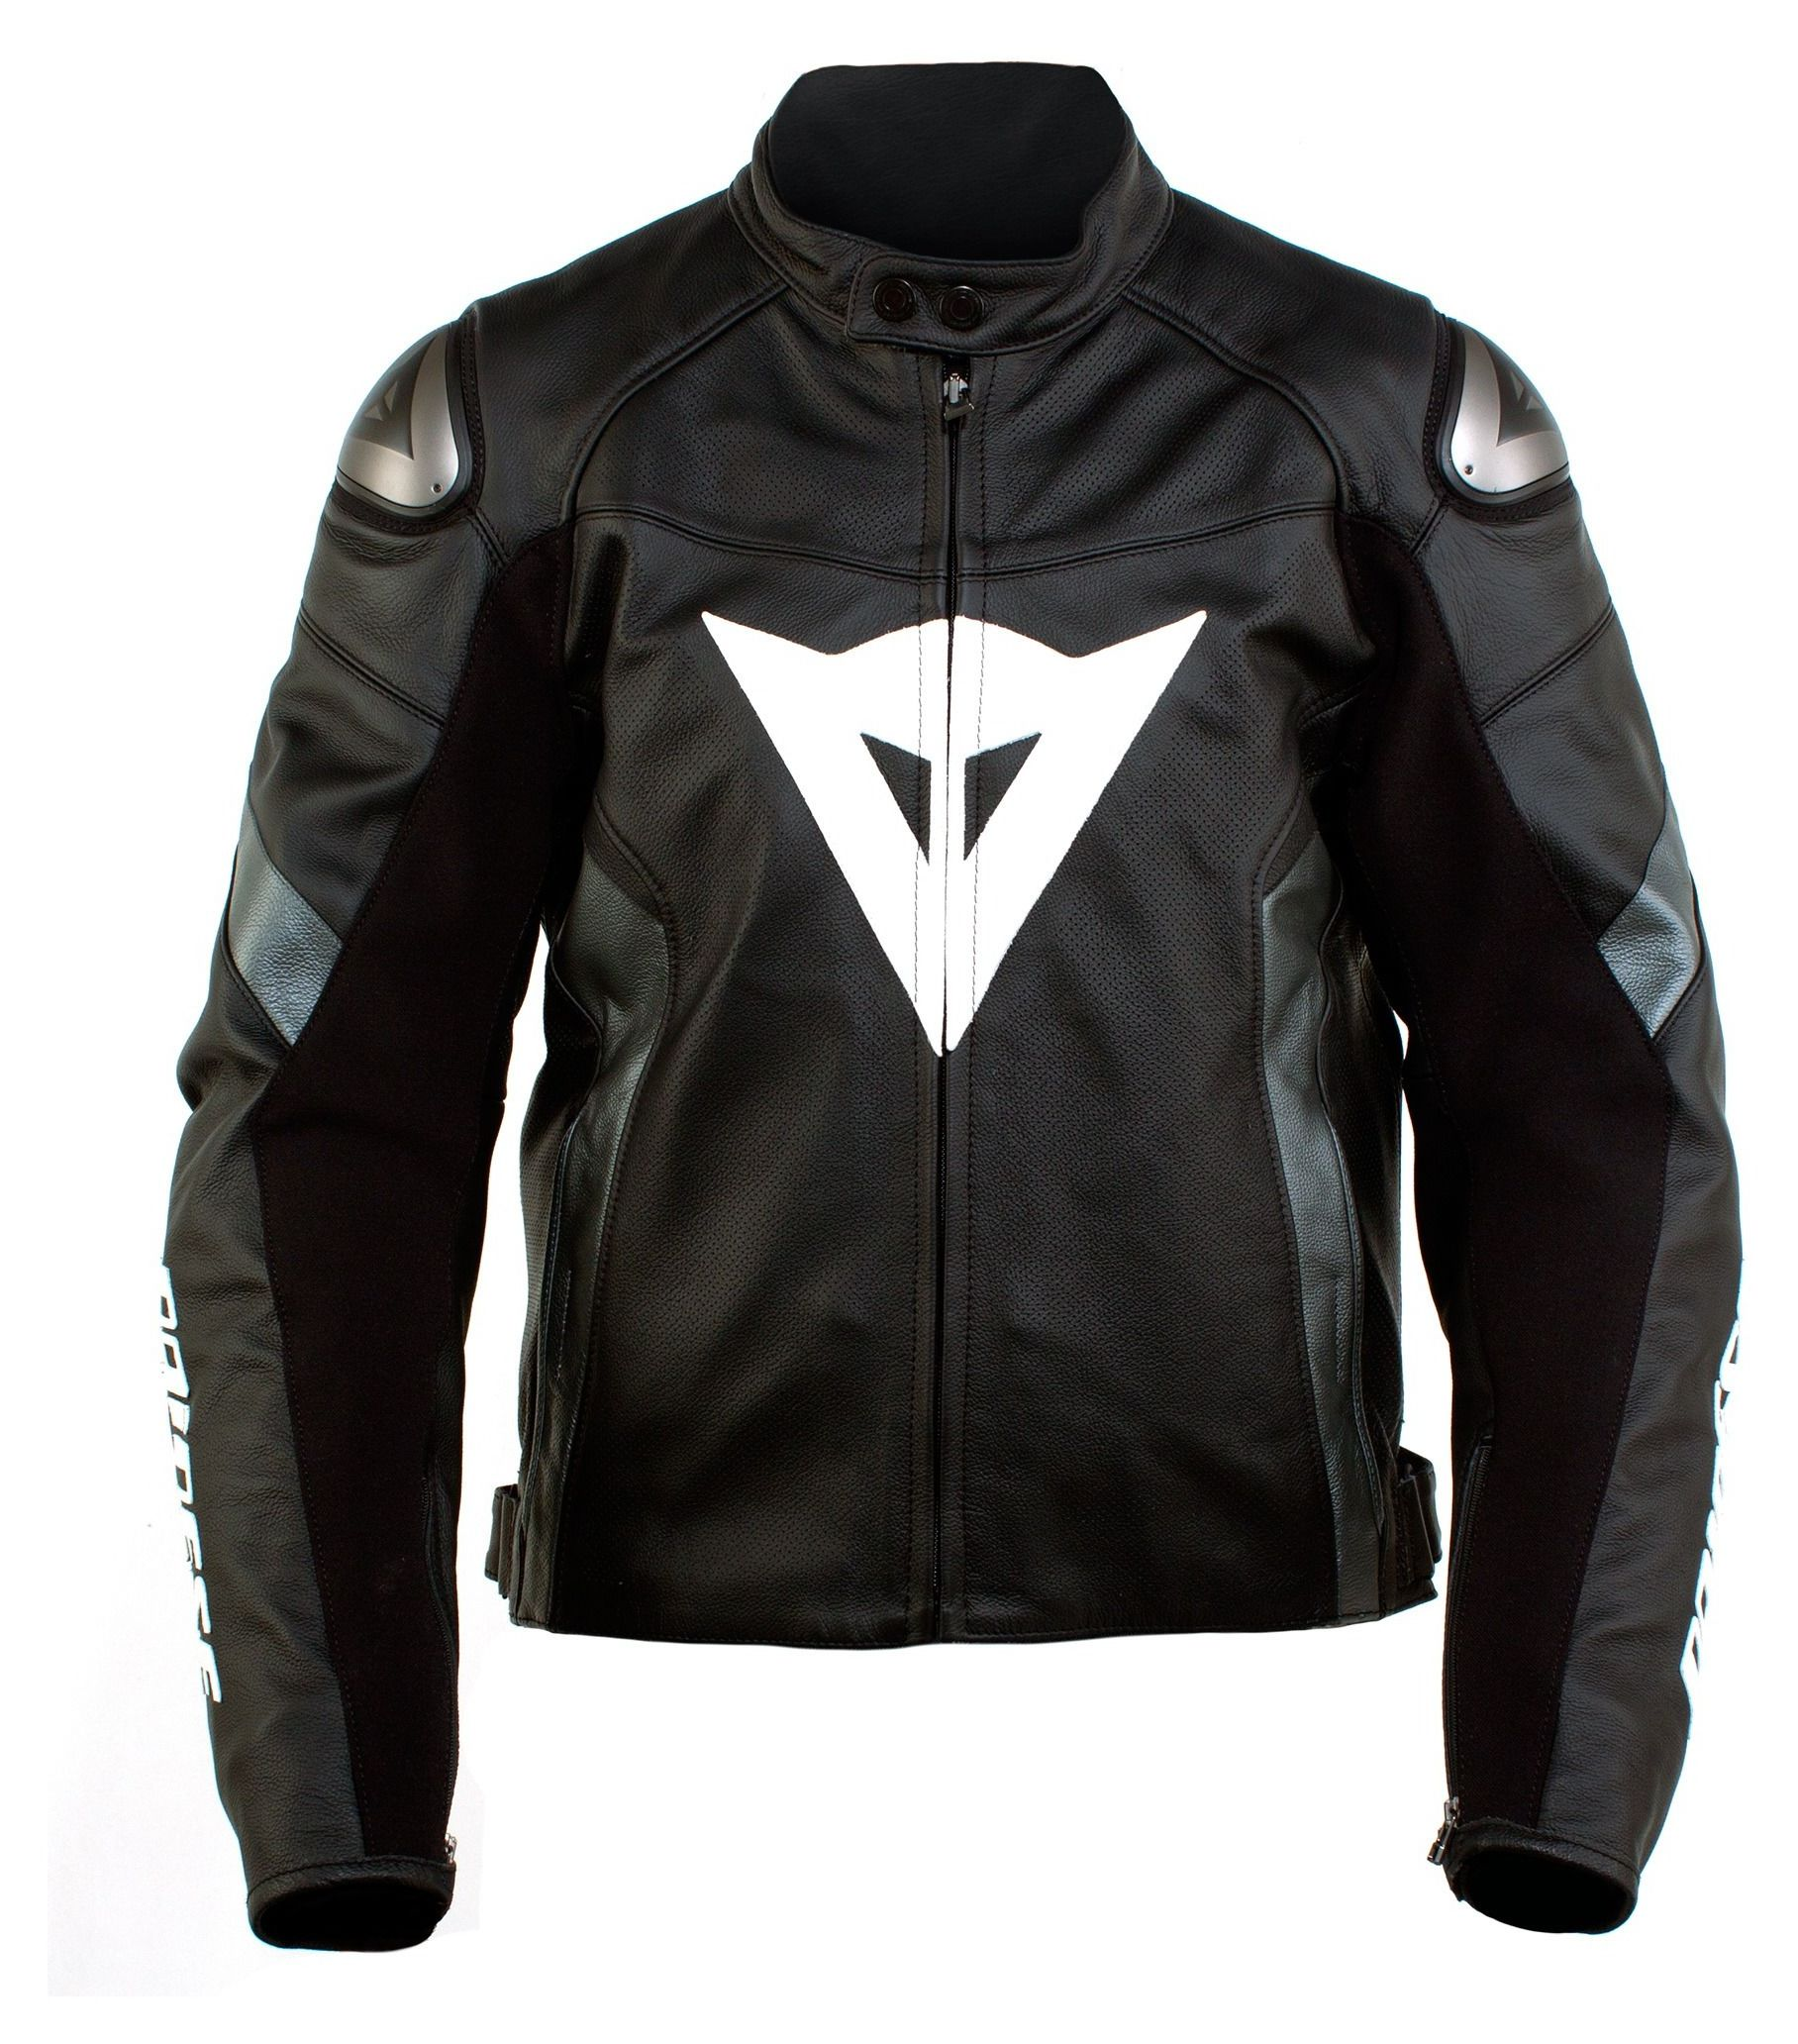 Dainese Veloce Leather Jacket Cycle Gear